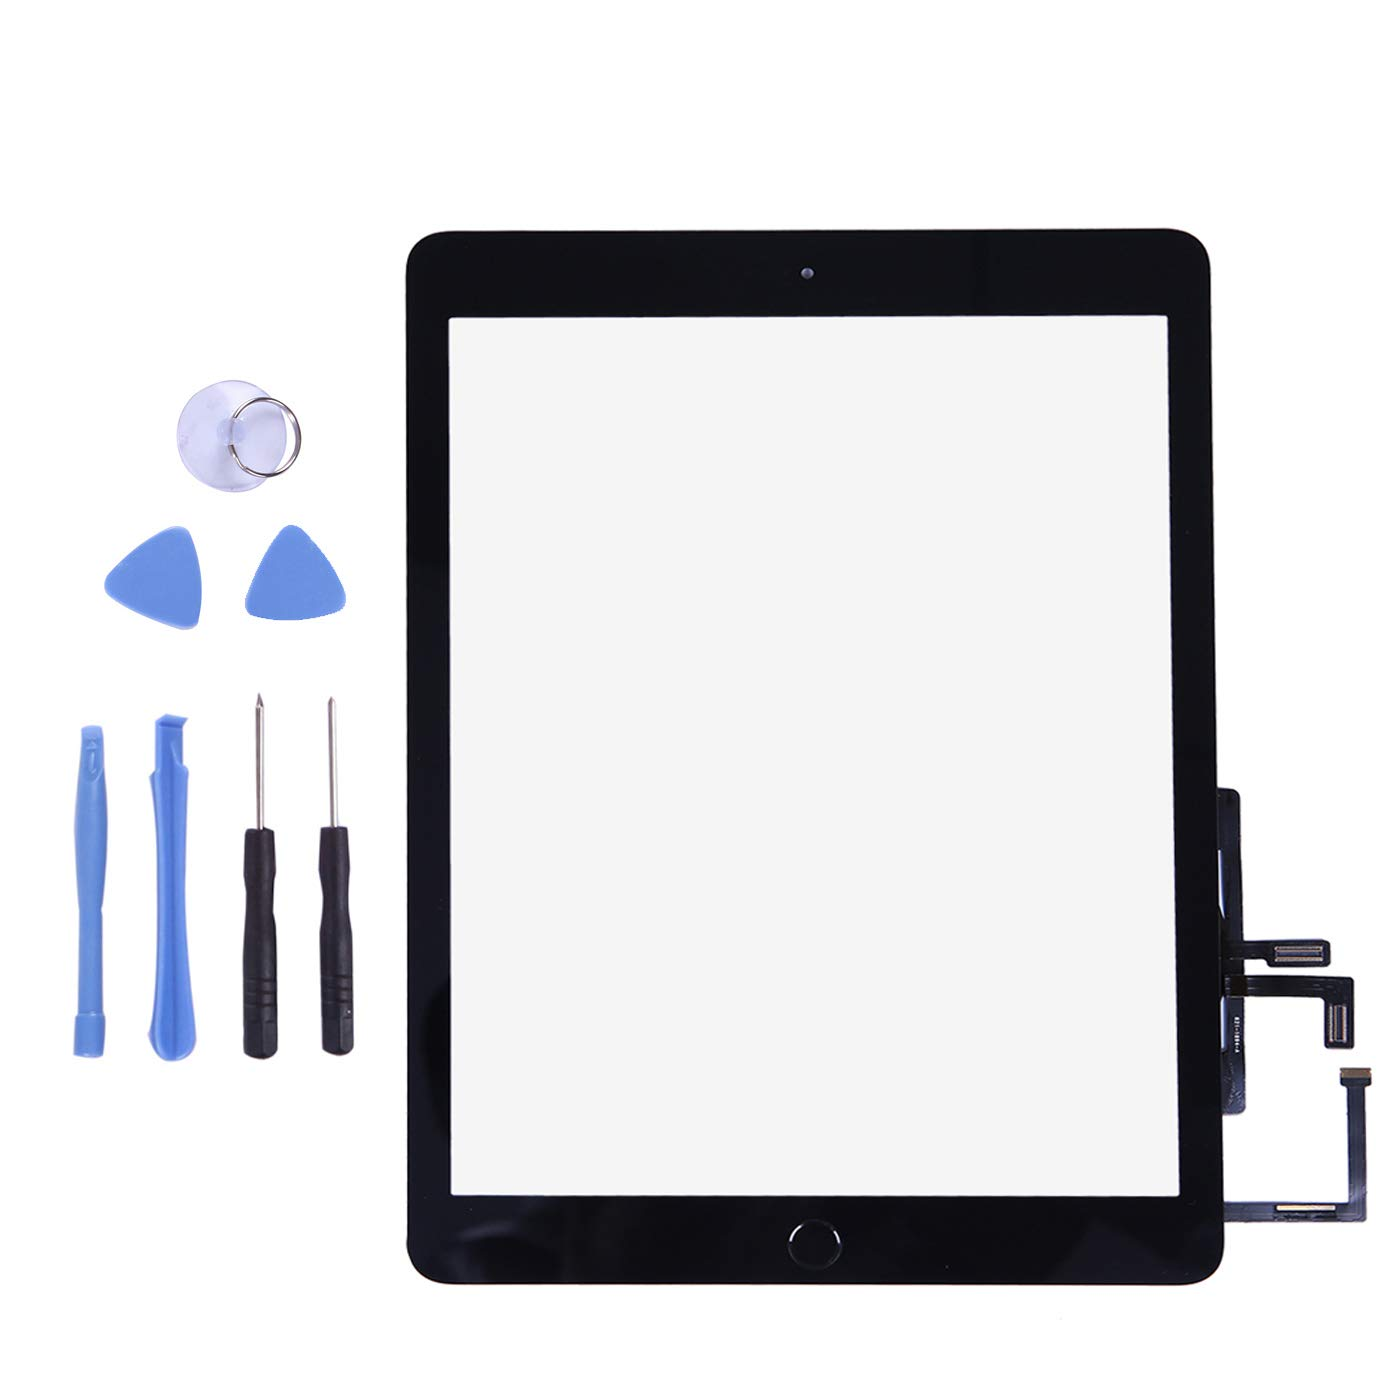 Touch Screen Digitizer for 2017 iPad 9.7 A1822, A1823 - Black Front Glass Replacement with Home Button /& Tool Repair Kit